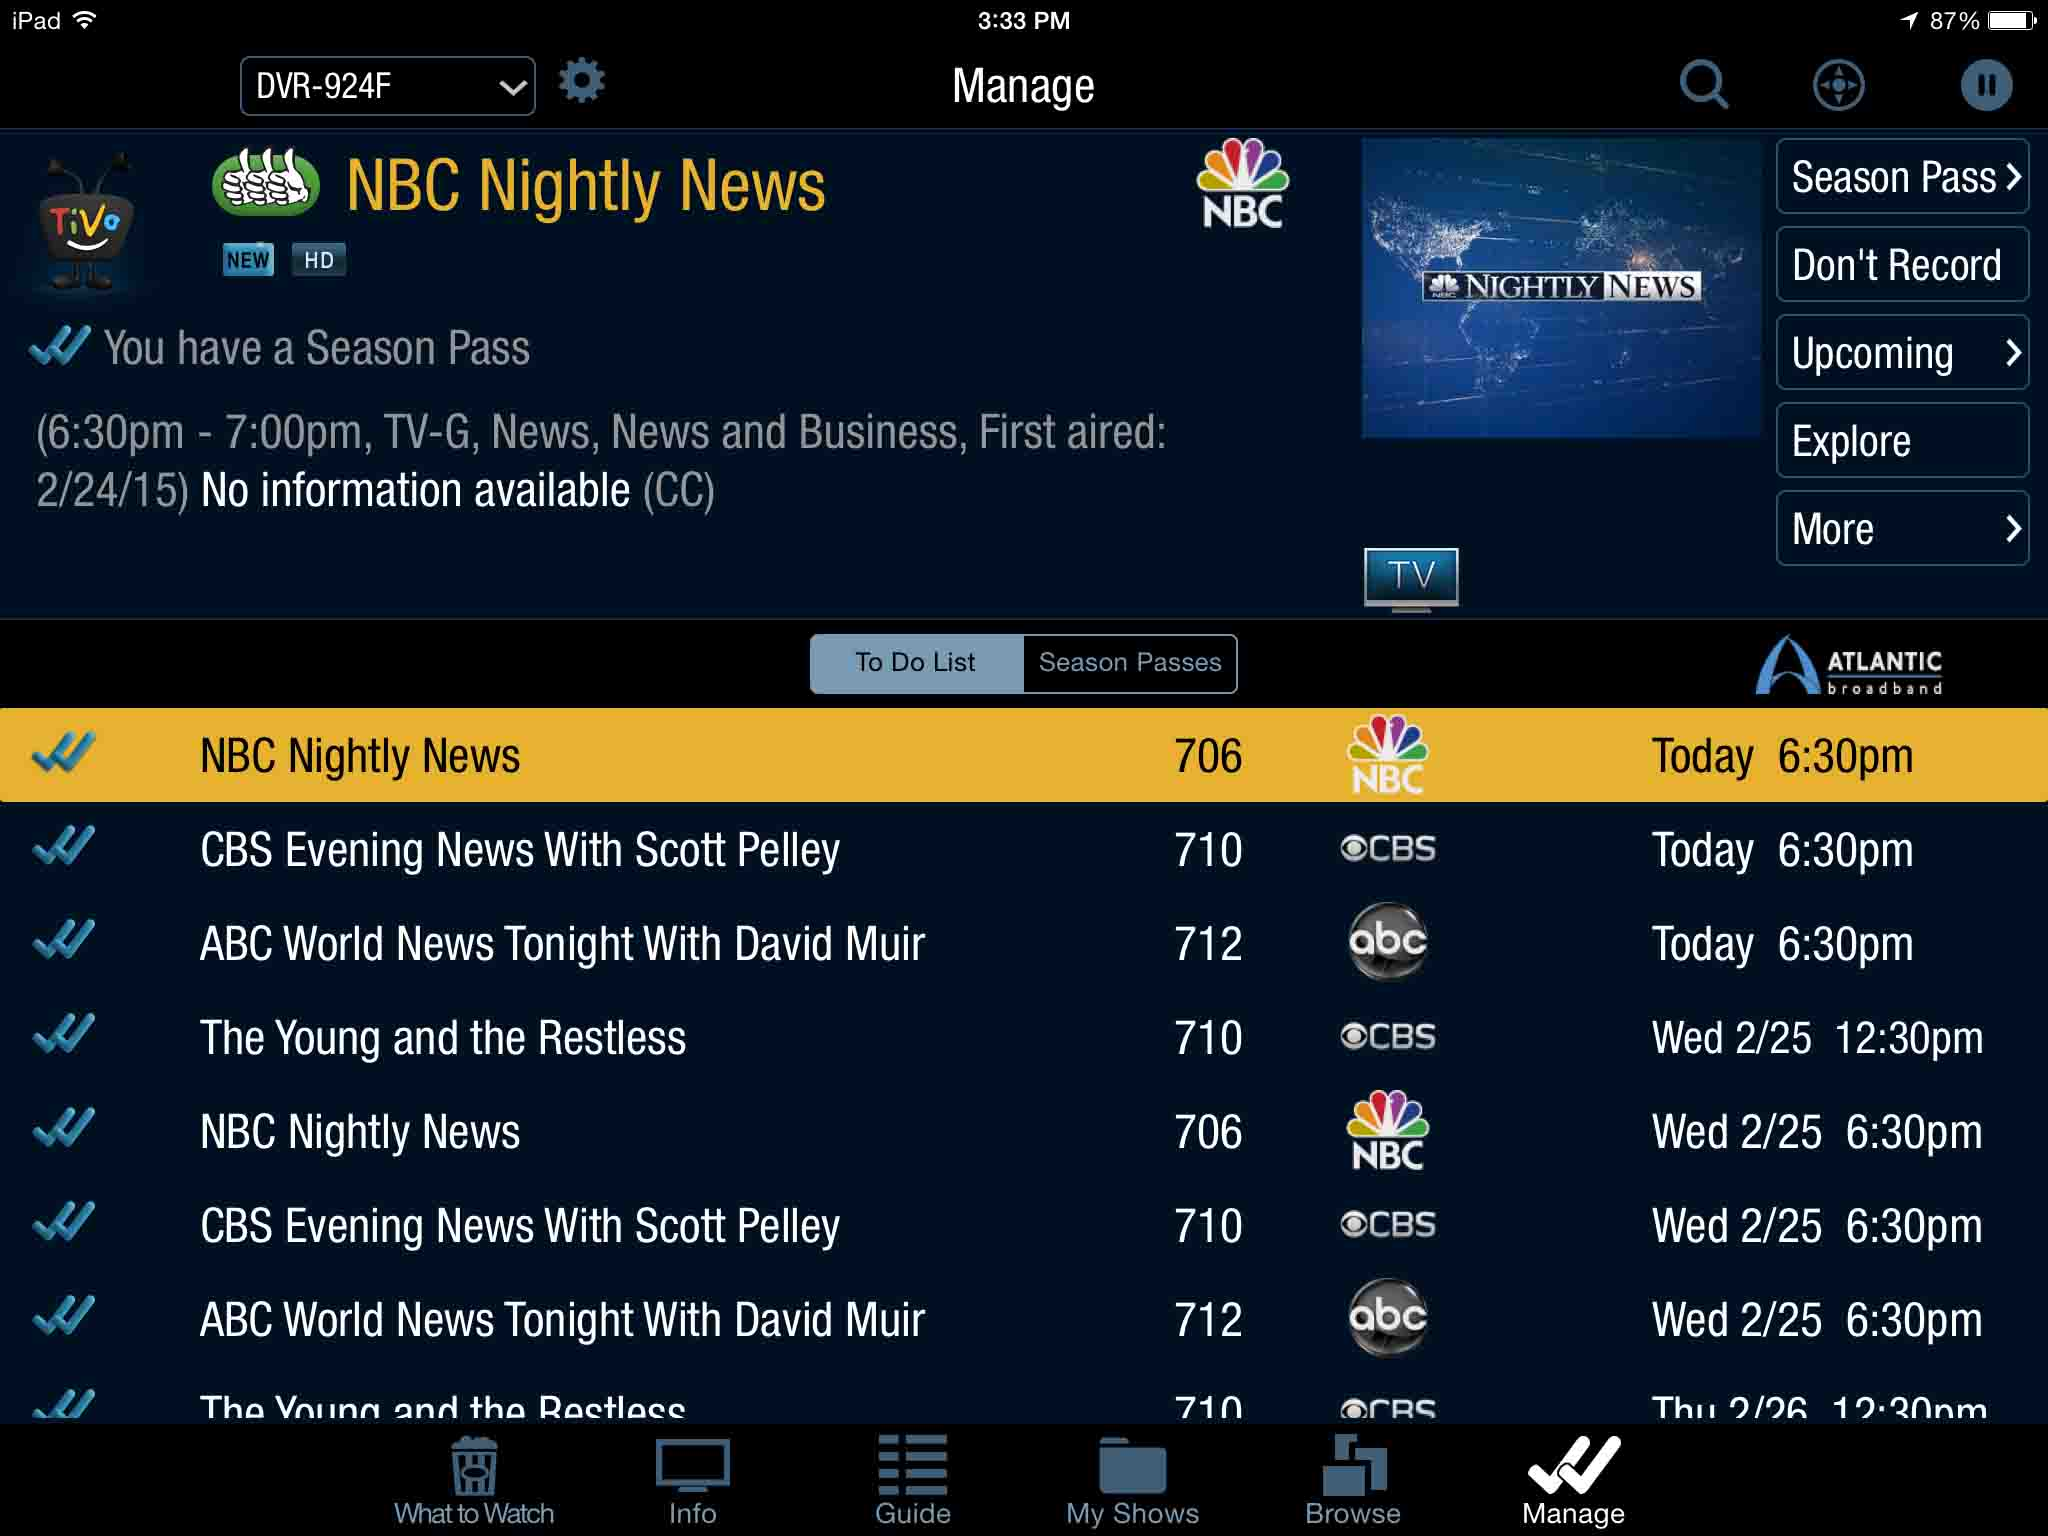 List of Upcoming Shows to be Recorded on the Tivo T6 Roamio DVR from Atlantic Broadband.